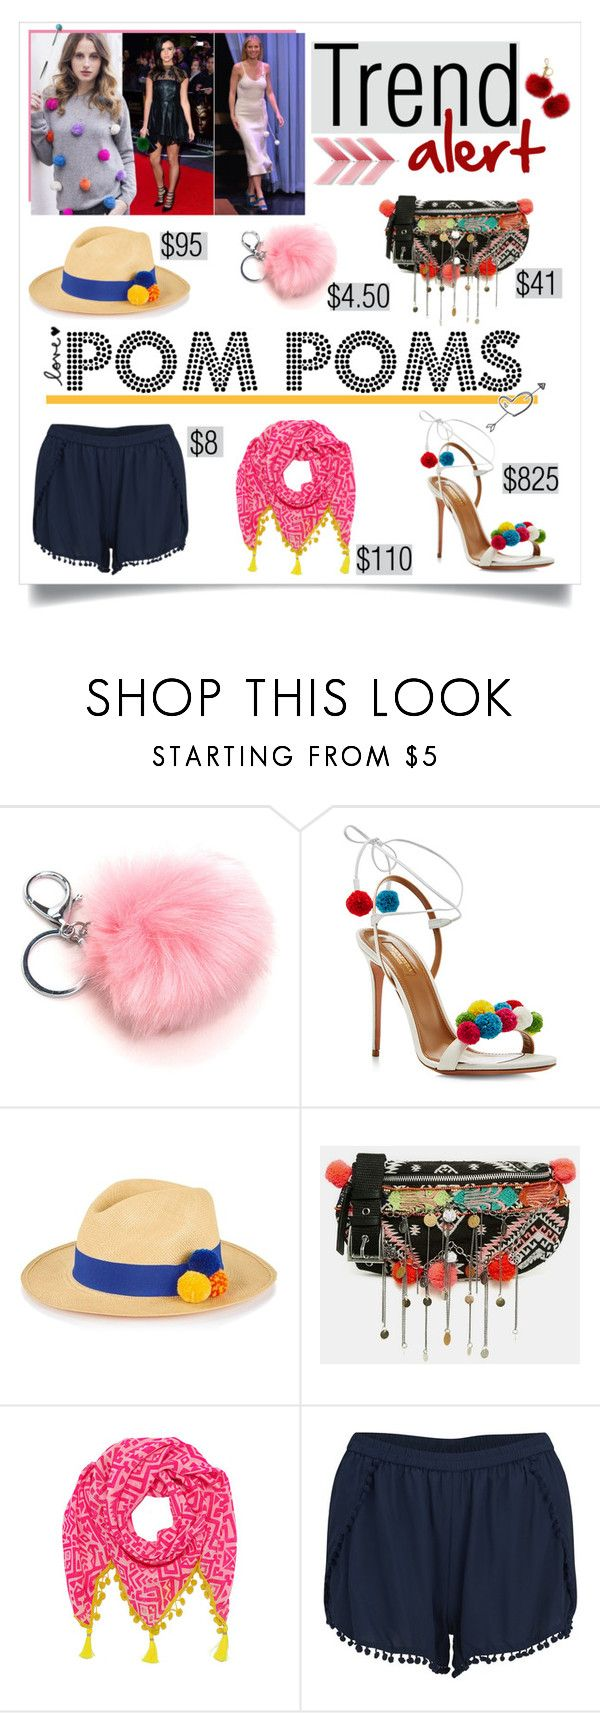 """pom pom trend"" by divacrafts ❤ liked on Polyvore featuring Aquazzura, Prymal, ASOS, Mercy Delta, VILA, Michael Kors and Original"